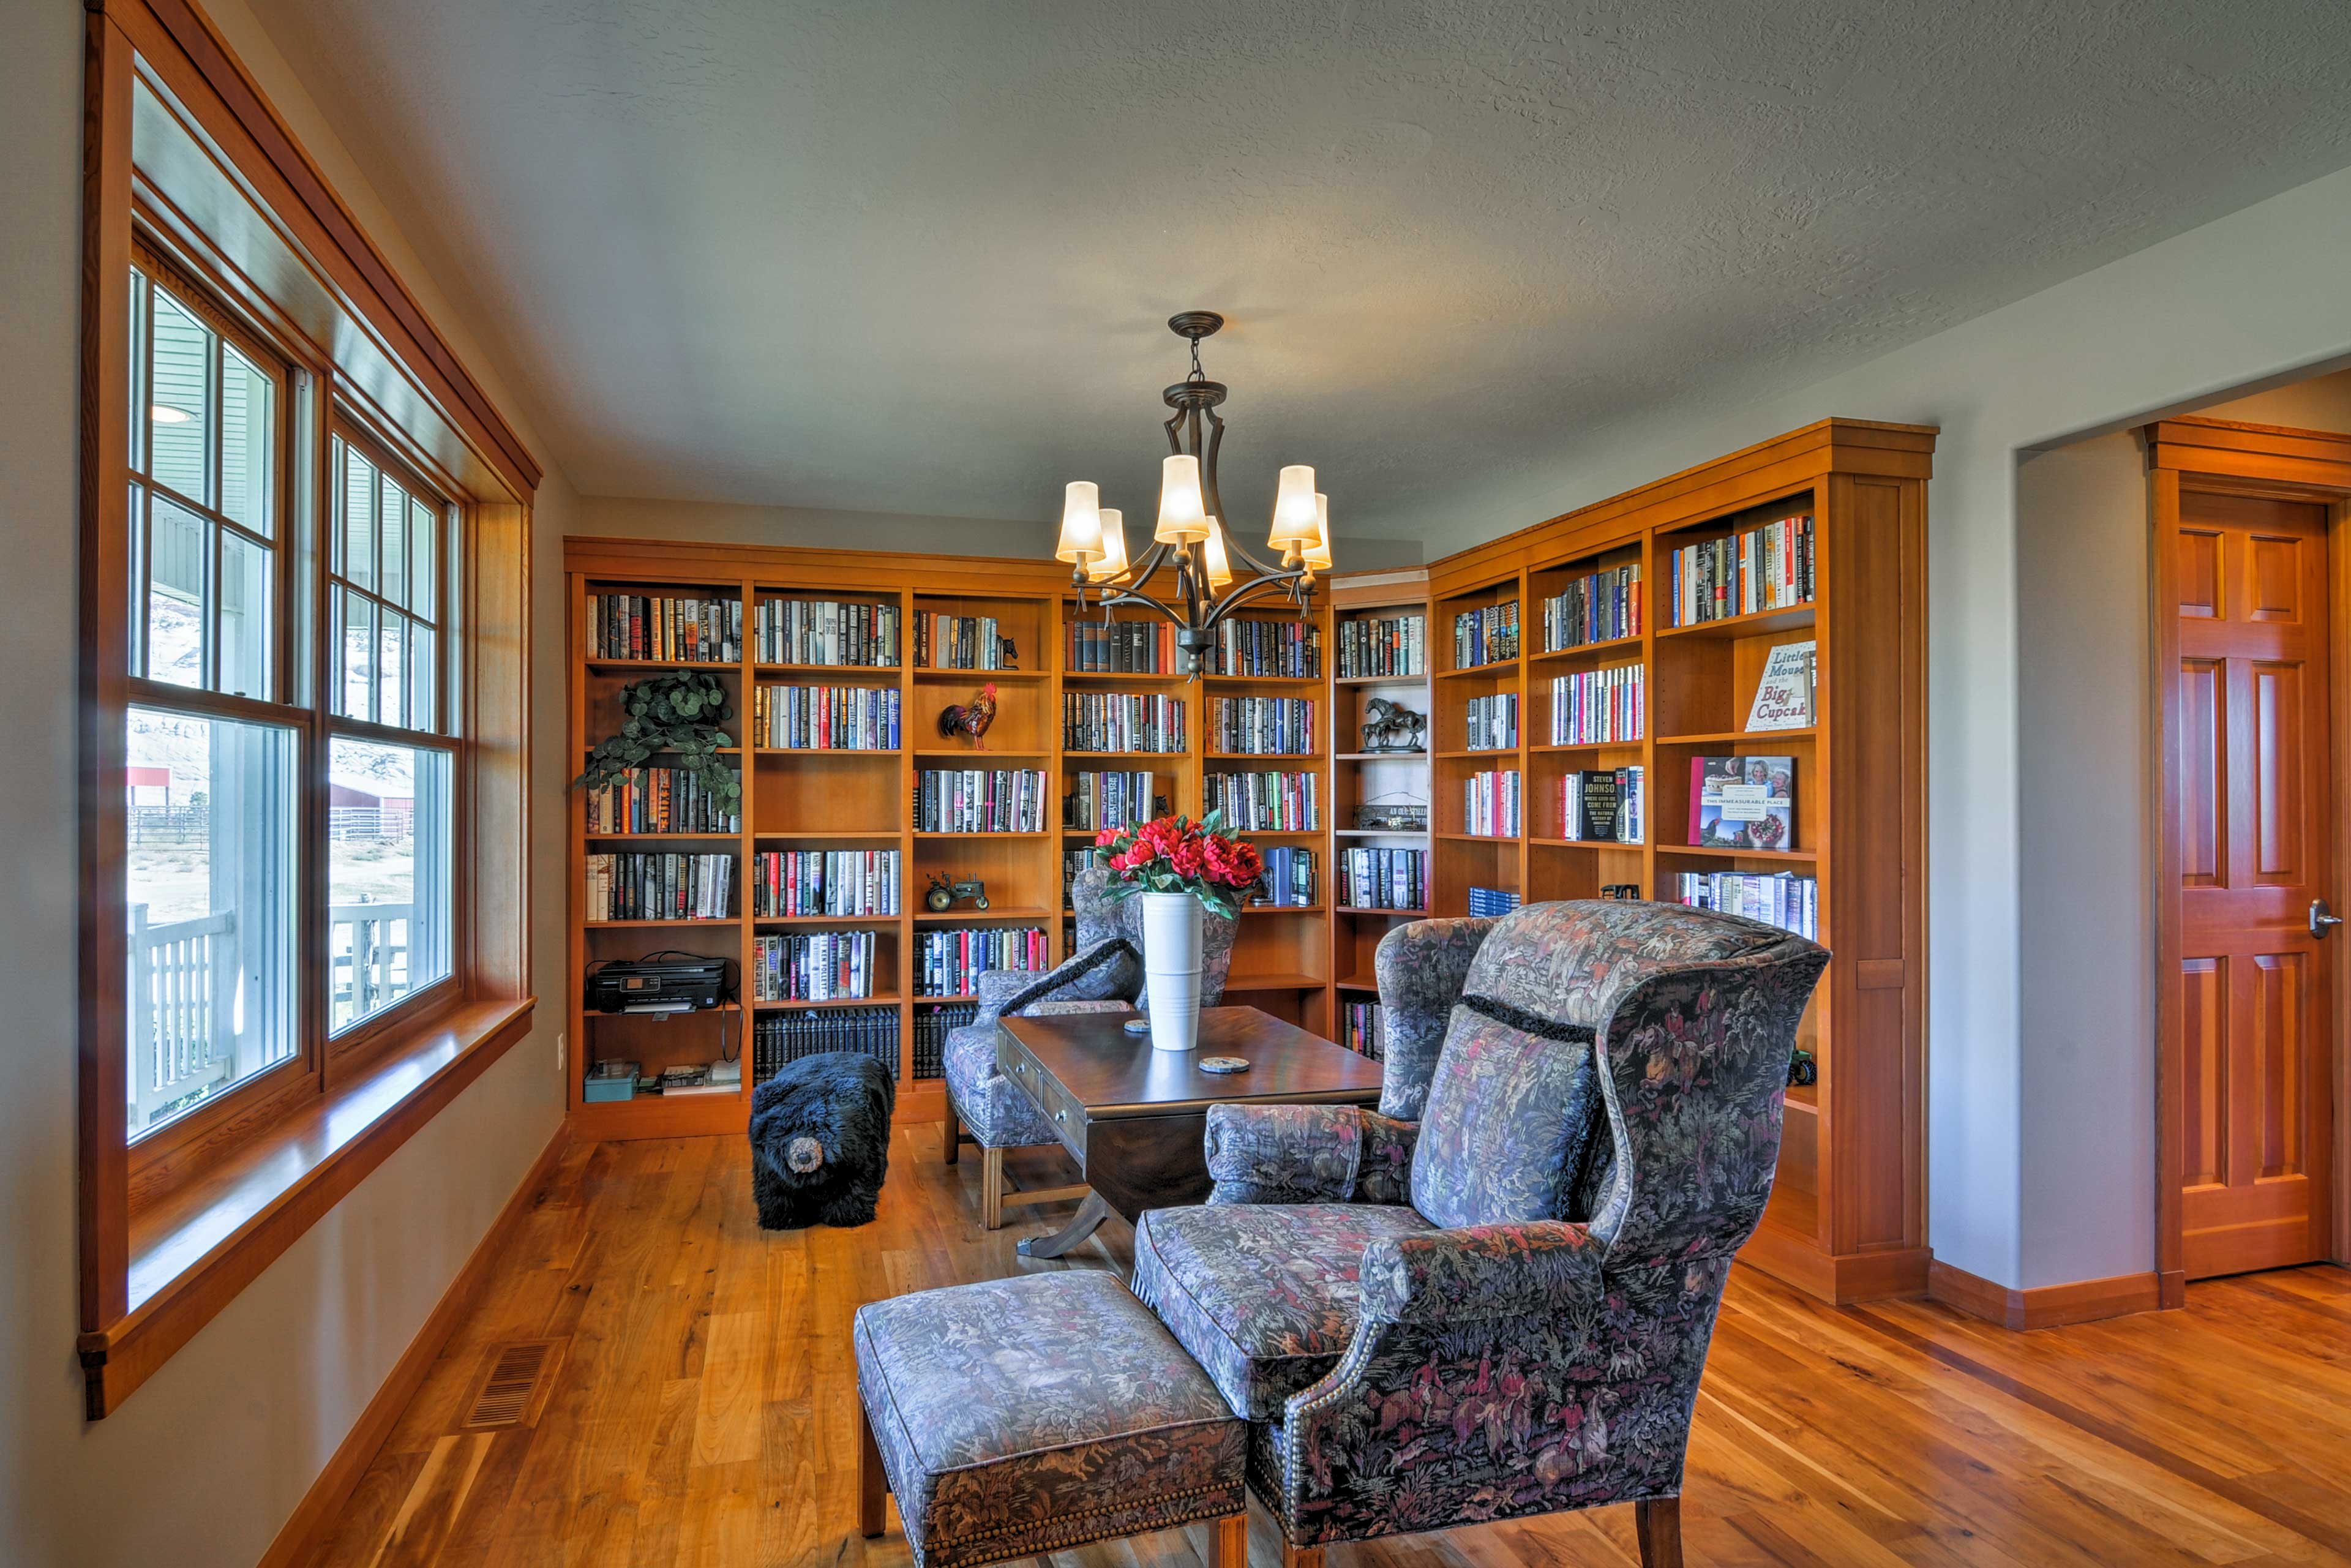 On the second floor, you'll find multiple bedrooms & this endearing library.